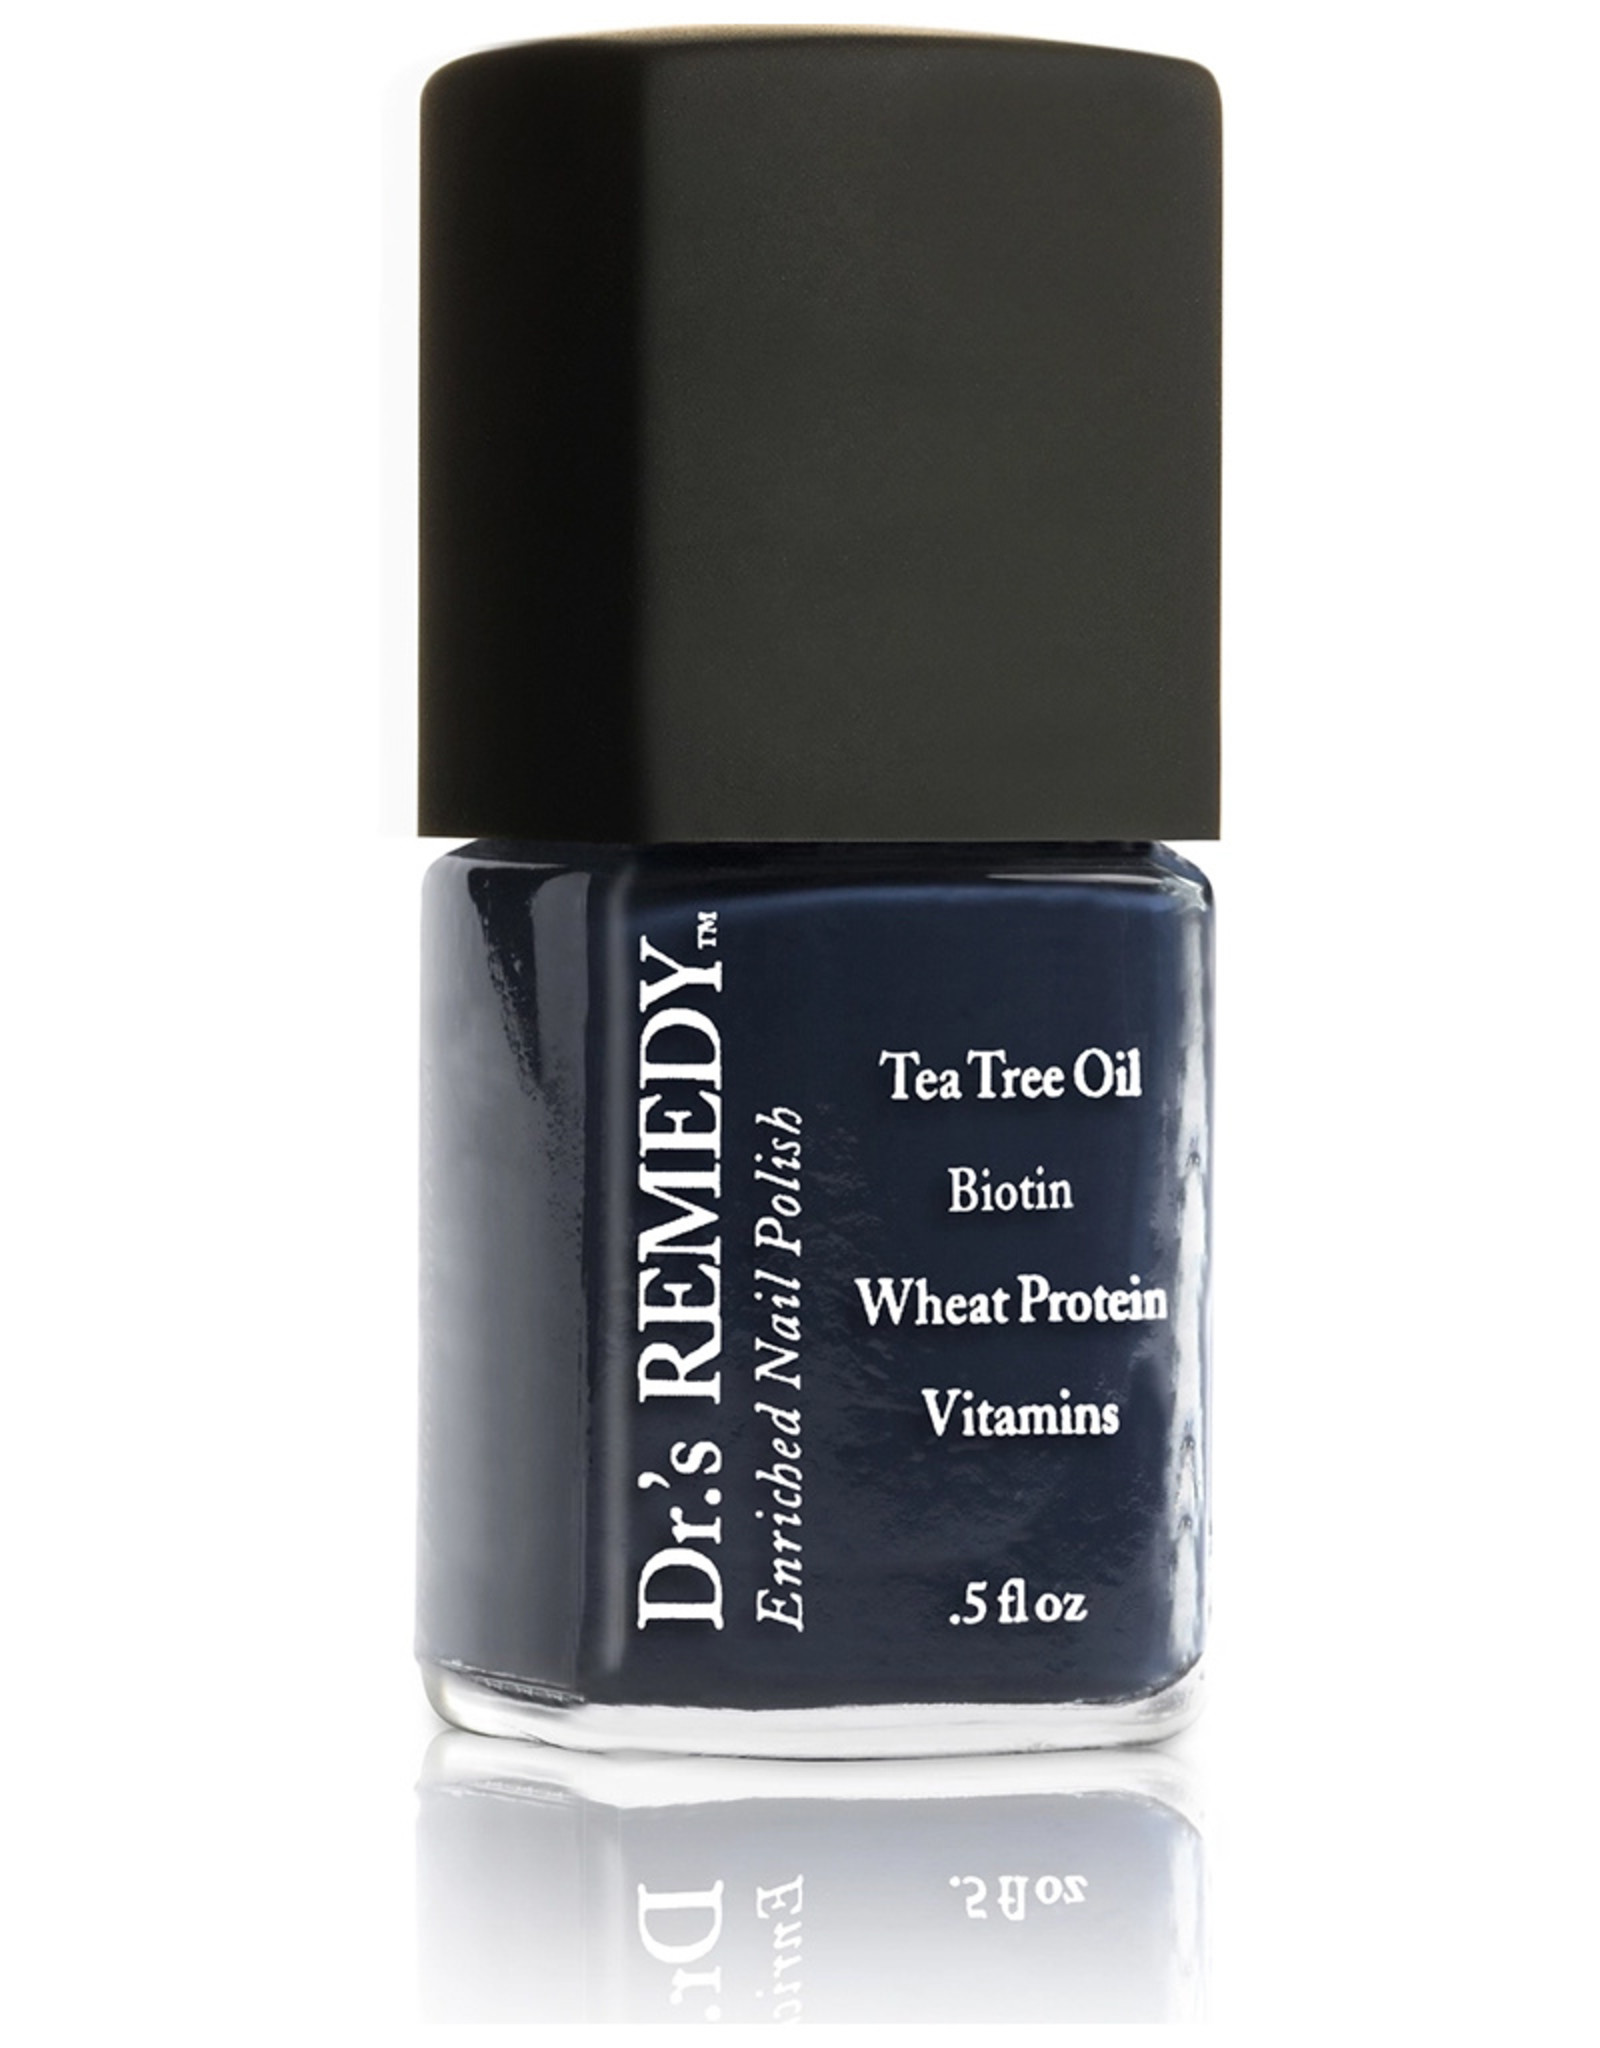 Dr.'s Remedy Enriched Nail Care Canada Lacquer Noble Navy